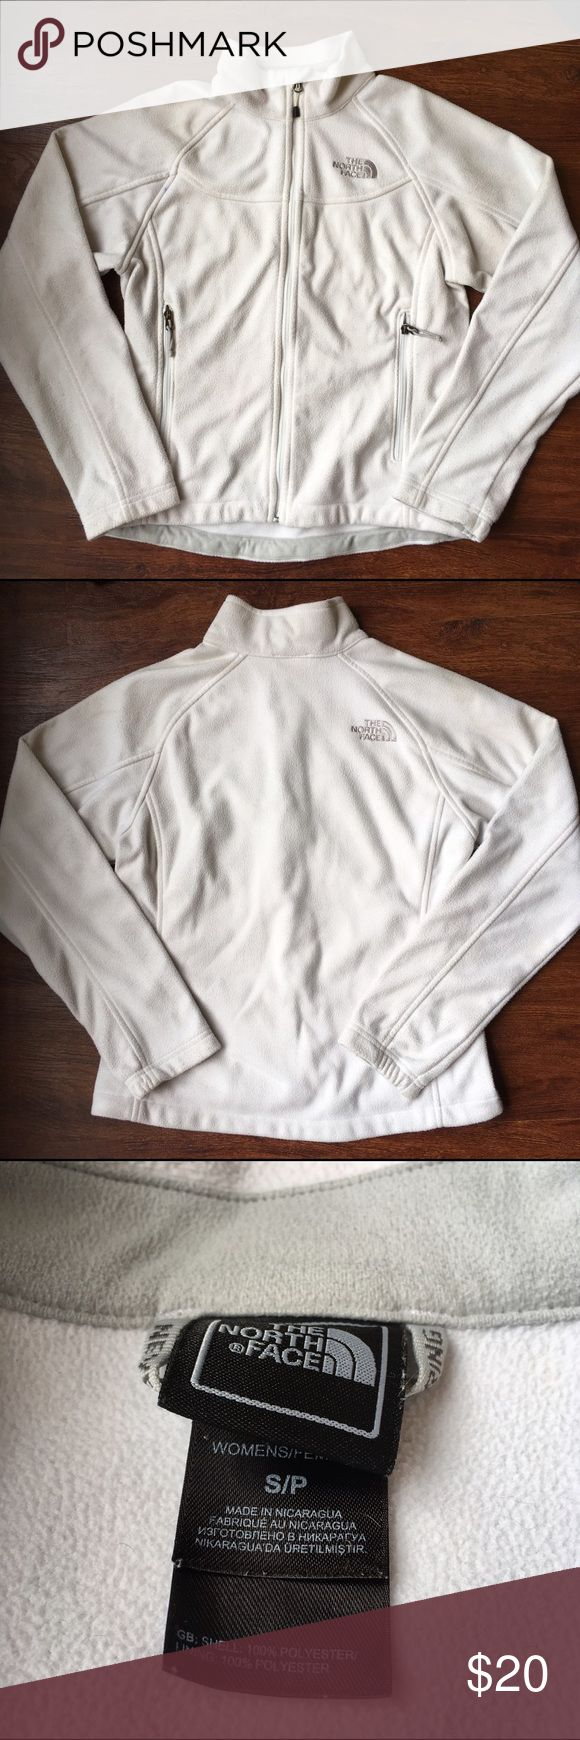 White North Face Jacket There are a few small stains and on some parts of the sleeves the fabric has become a less bright white color, other than that it's in good condition. 100% Polyester The North Face Jackets & Coats Utility Jackets